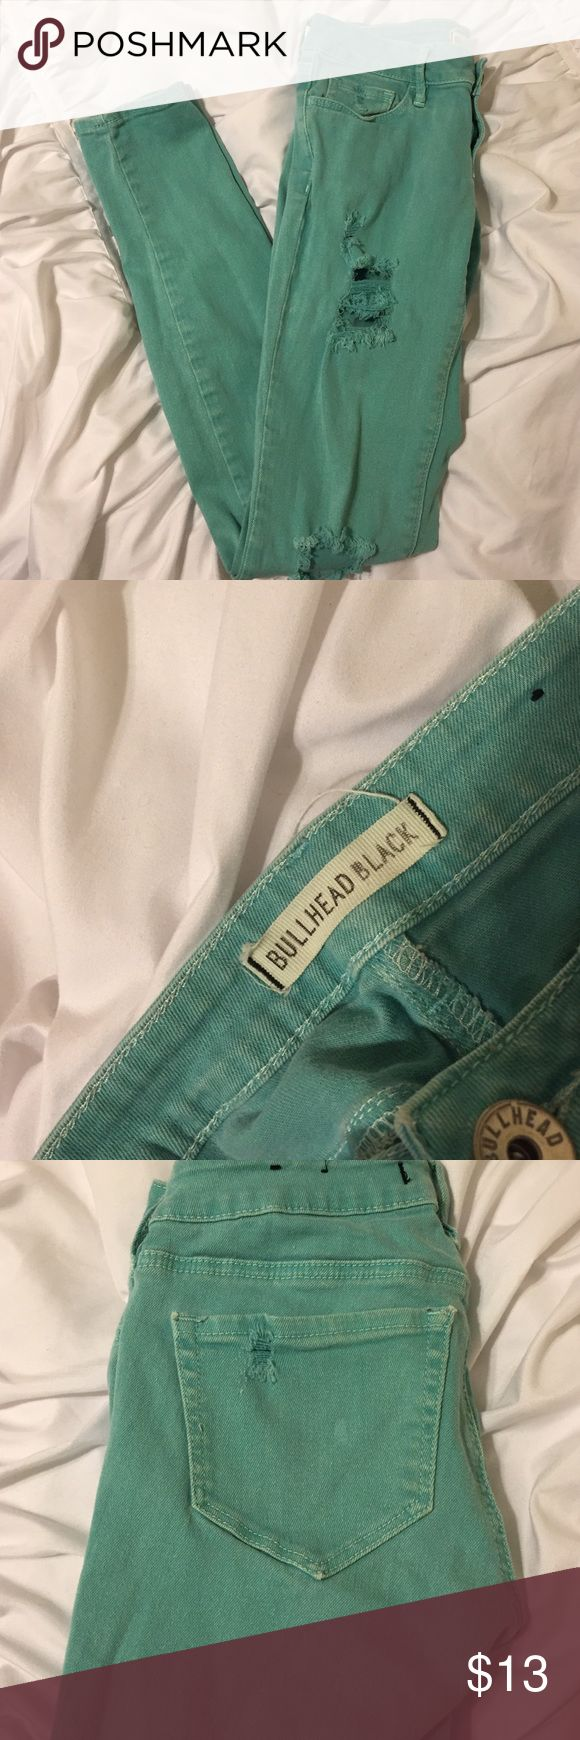 Bullhead Black Distressed skinny jeans Teal distressed jeans in good condition. Willing to trade and negotiate! (Listed as Brandy Melville for exposure) Brandy Melville Pants Skinny